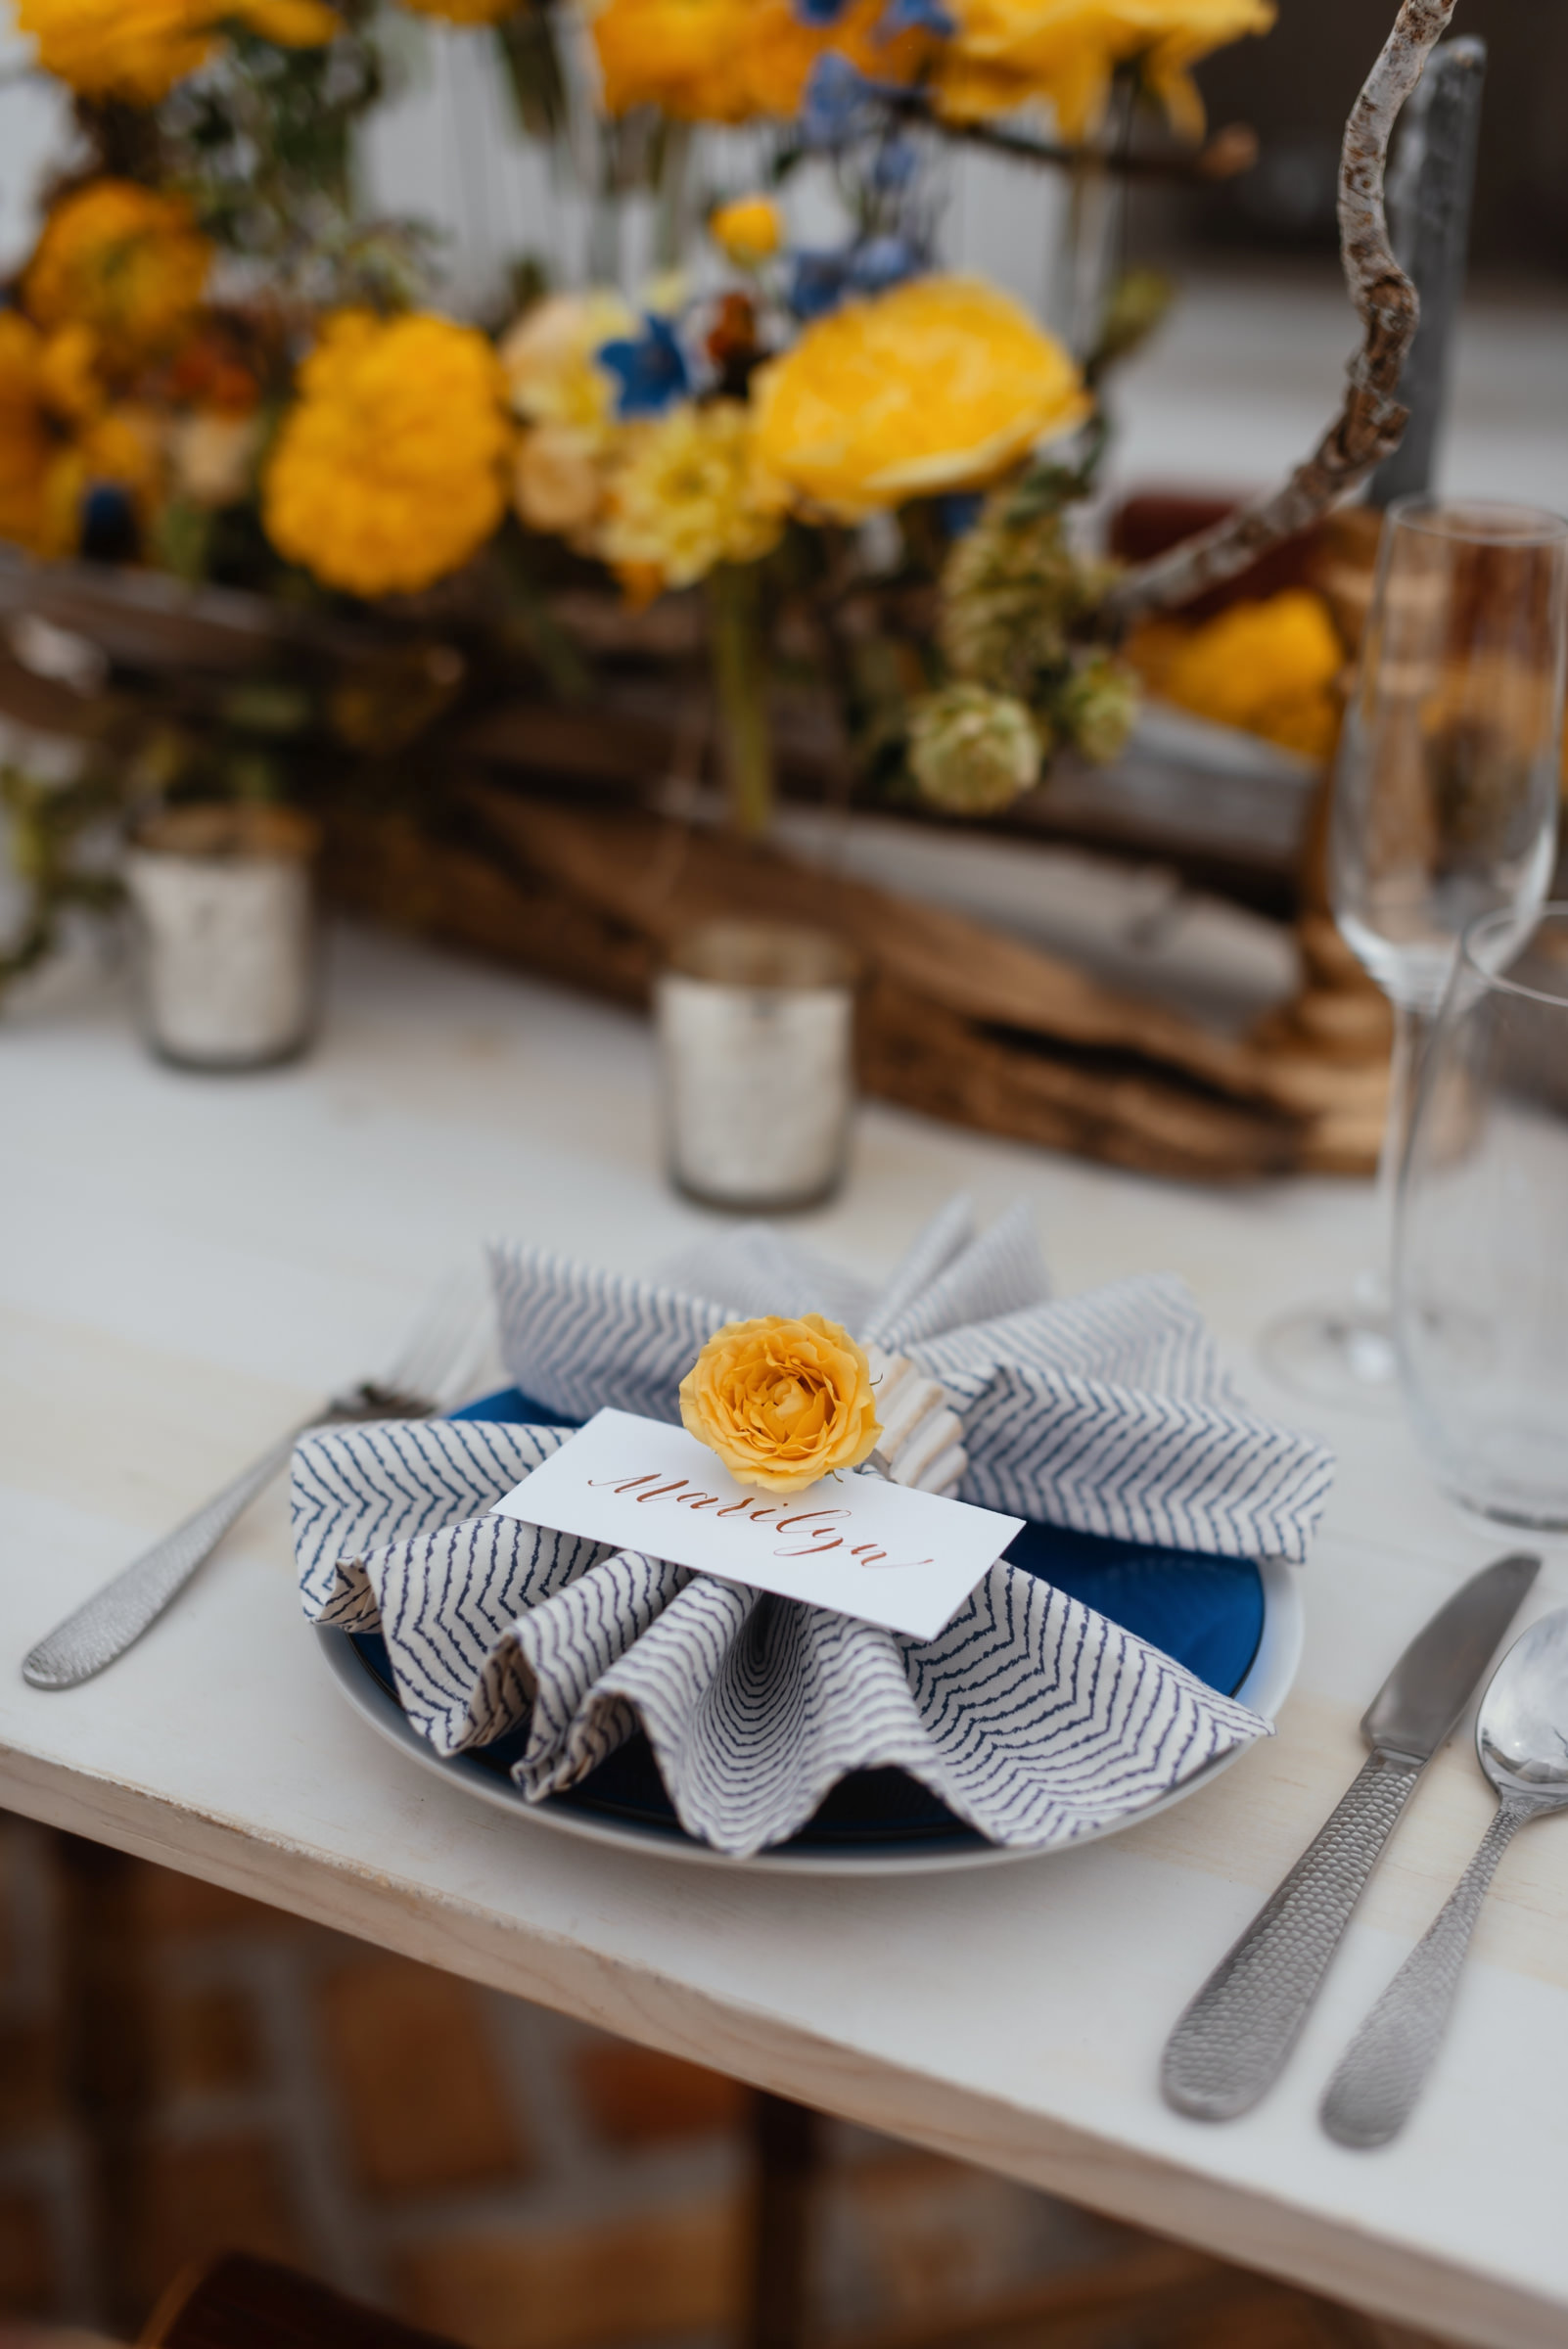 blue-white-and-yellow-reception-place-setting-photo-by-dark-roux